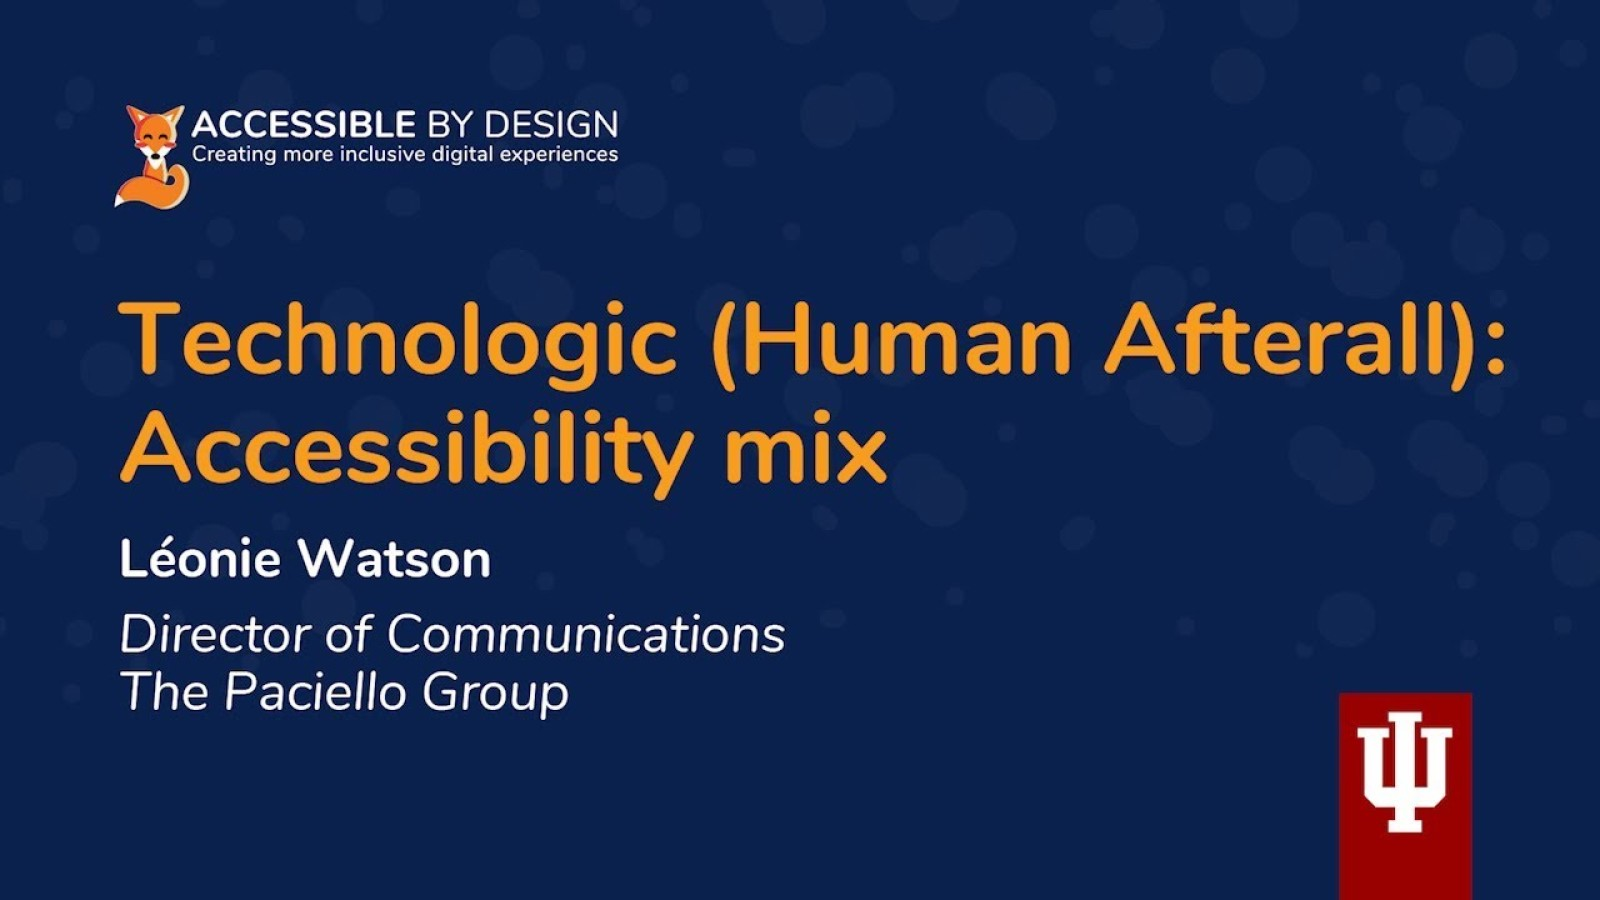 Technologic (Human afterall): Accessibility mix